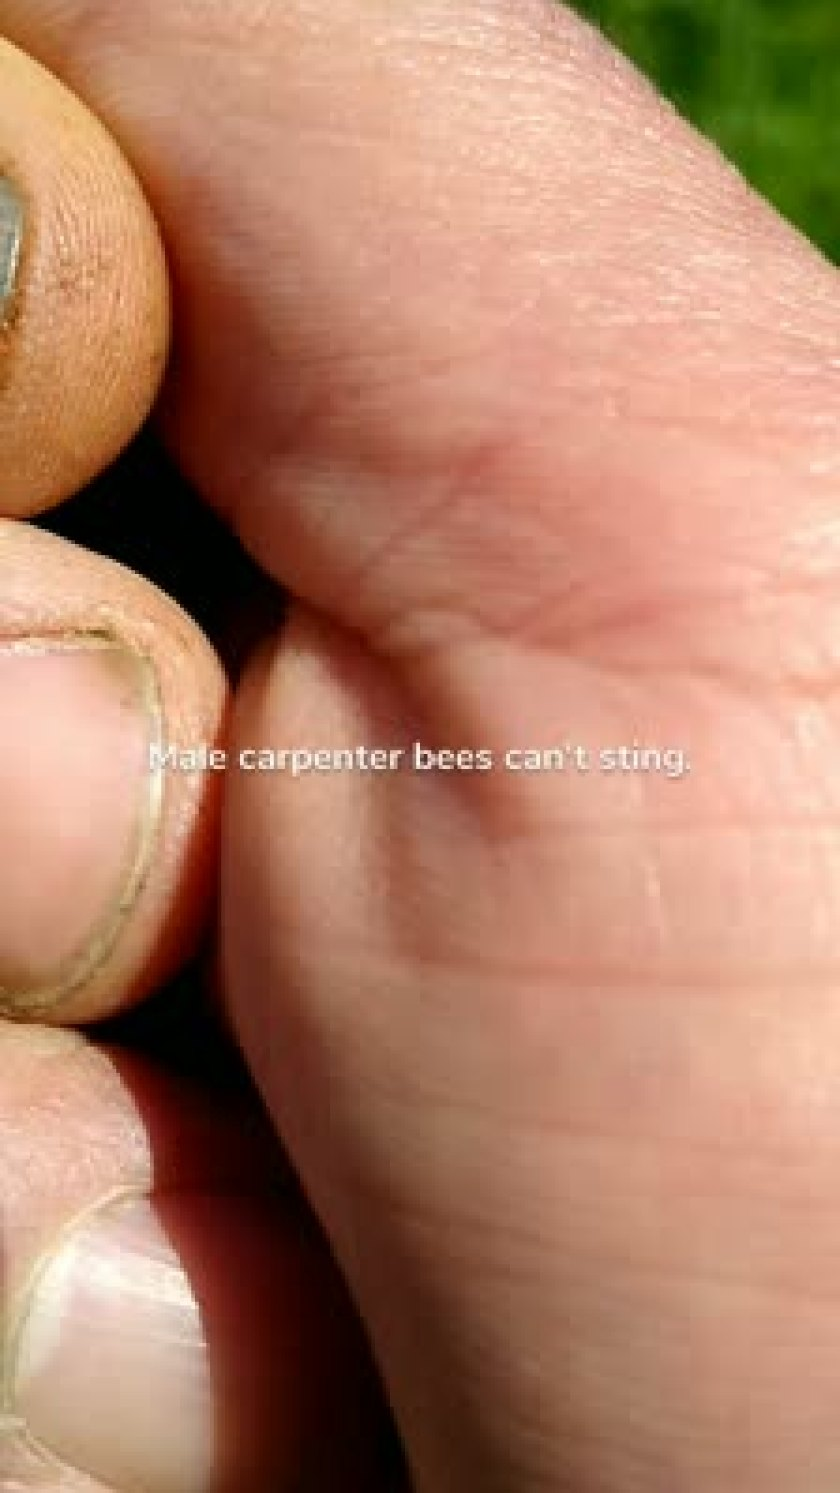 Male carpenter bees can't sting.